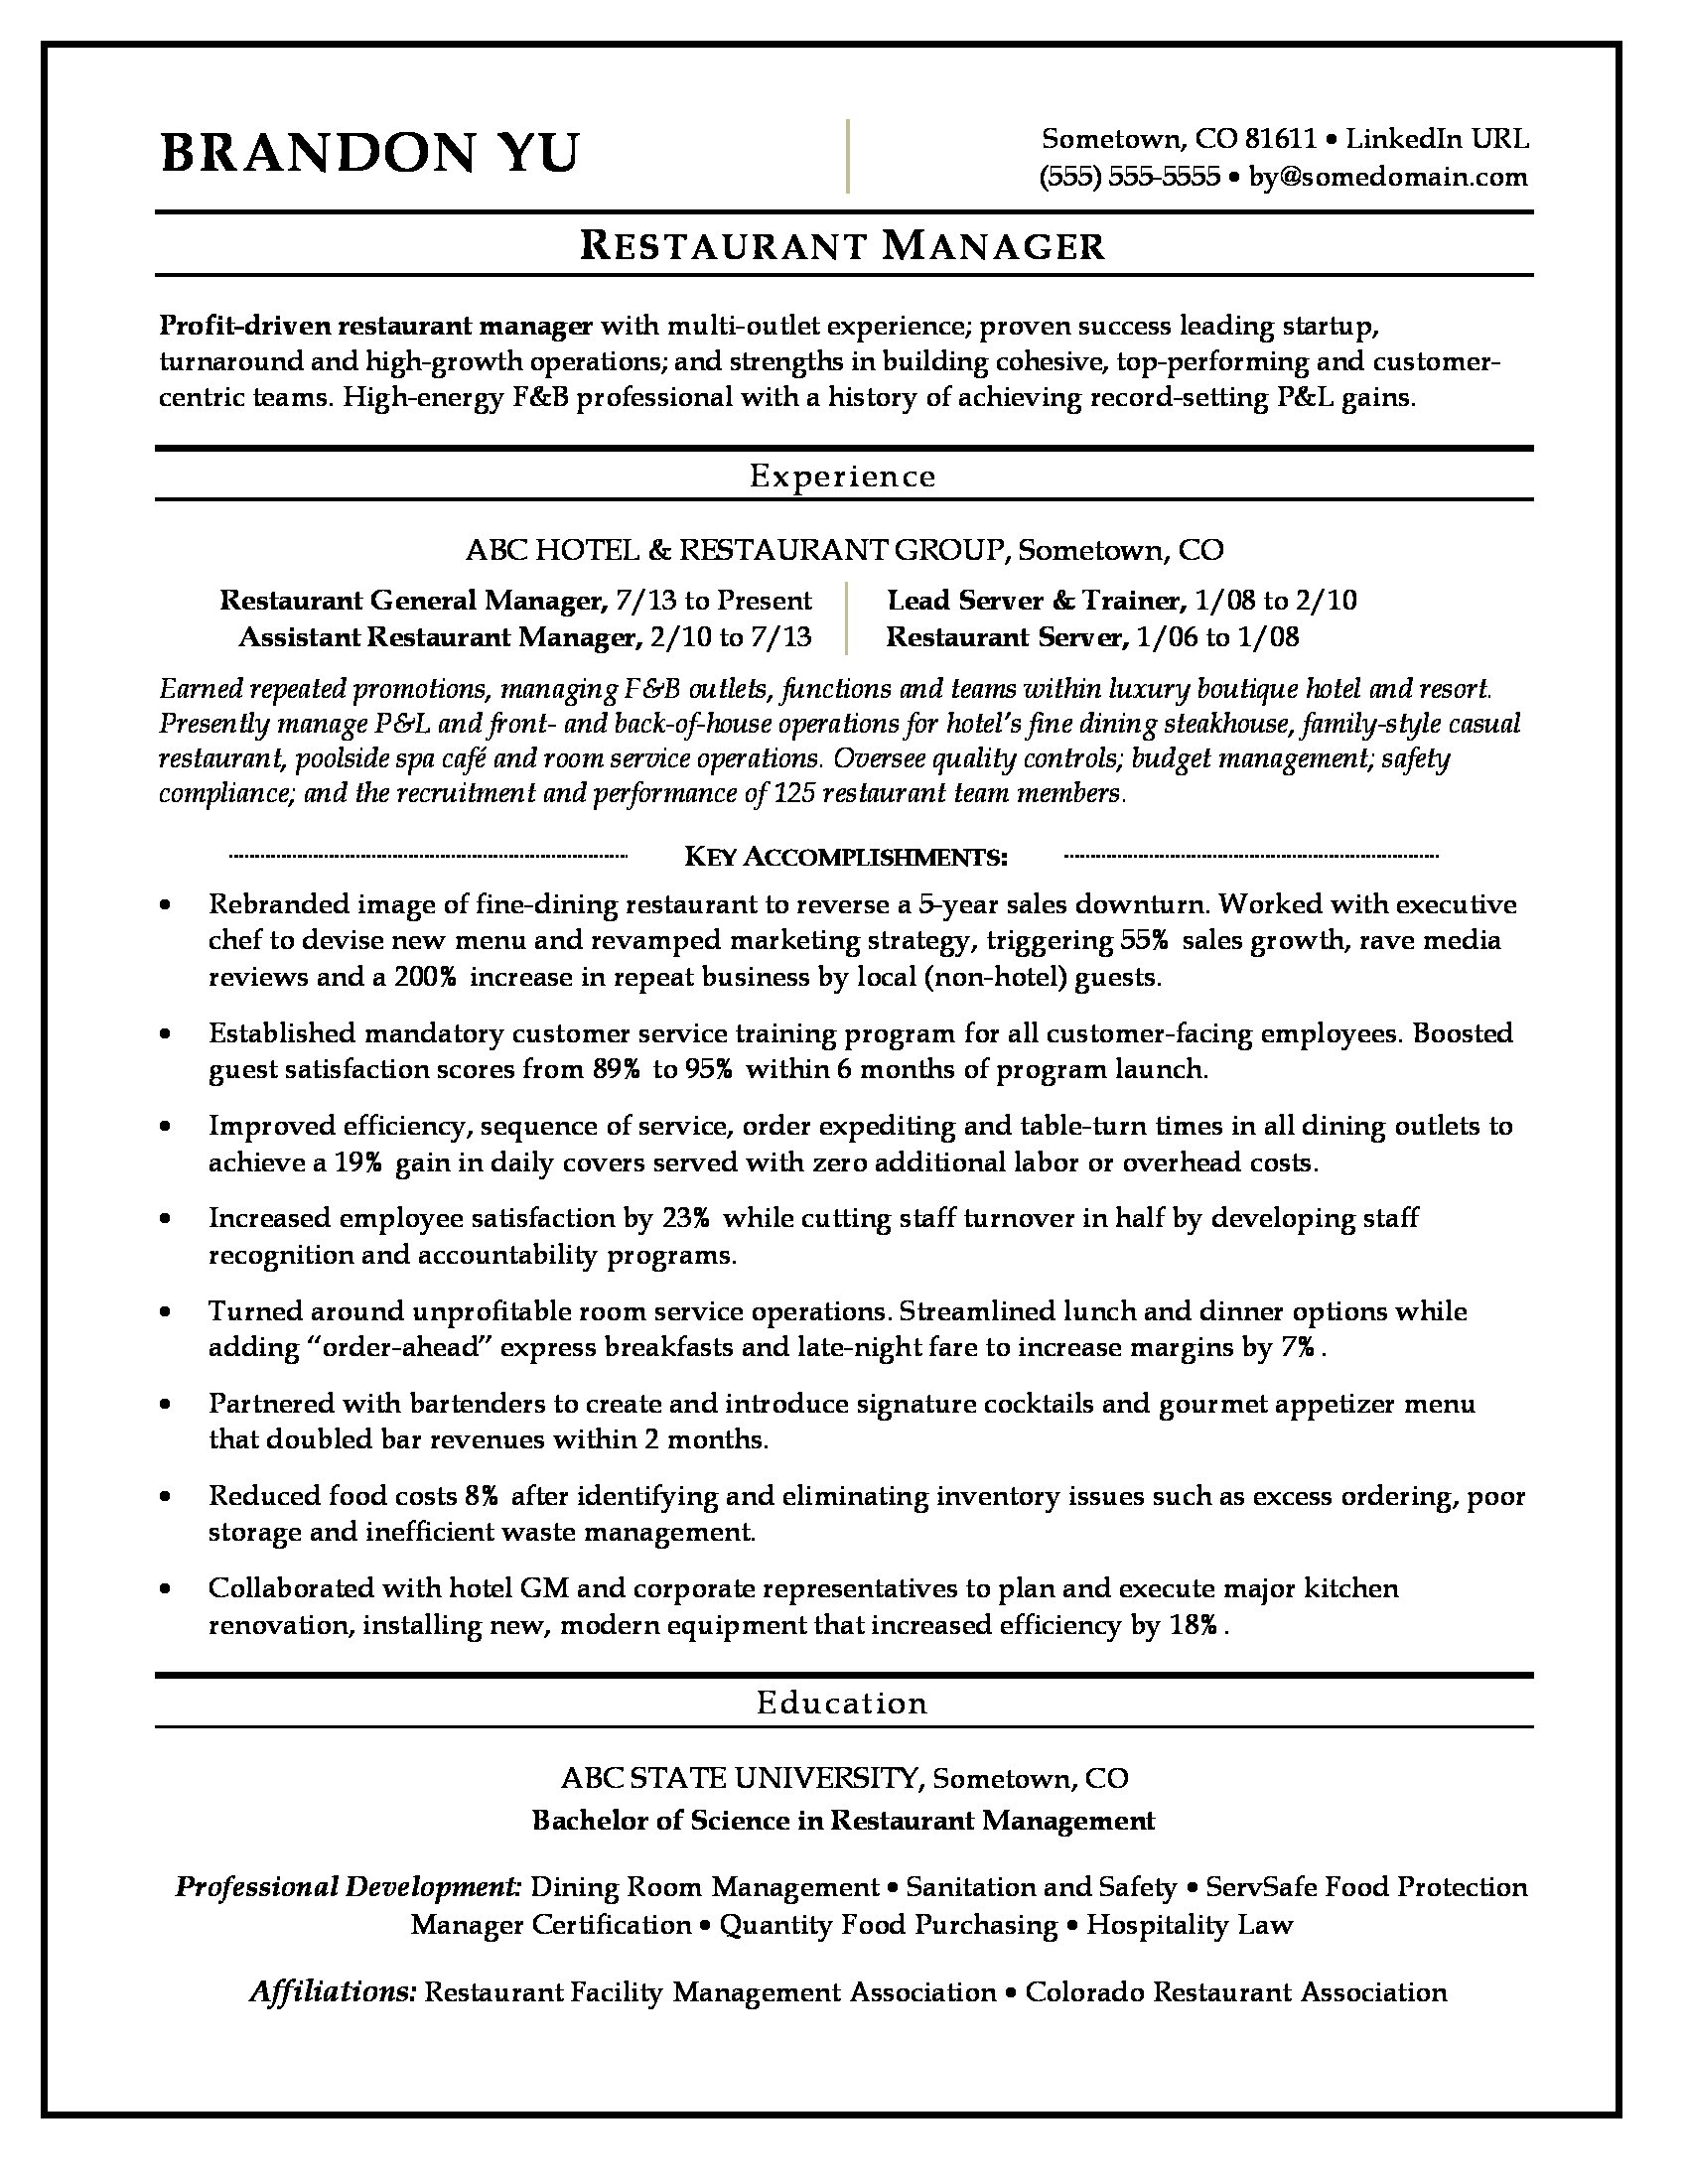 Restaurant manager resume sample monster sample resume for a restaurant manager thecheapjerseys Gallery